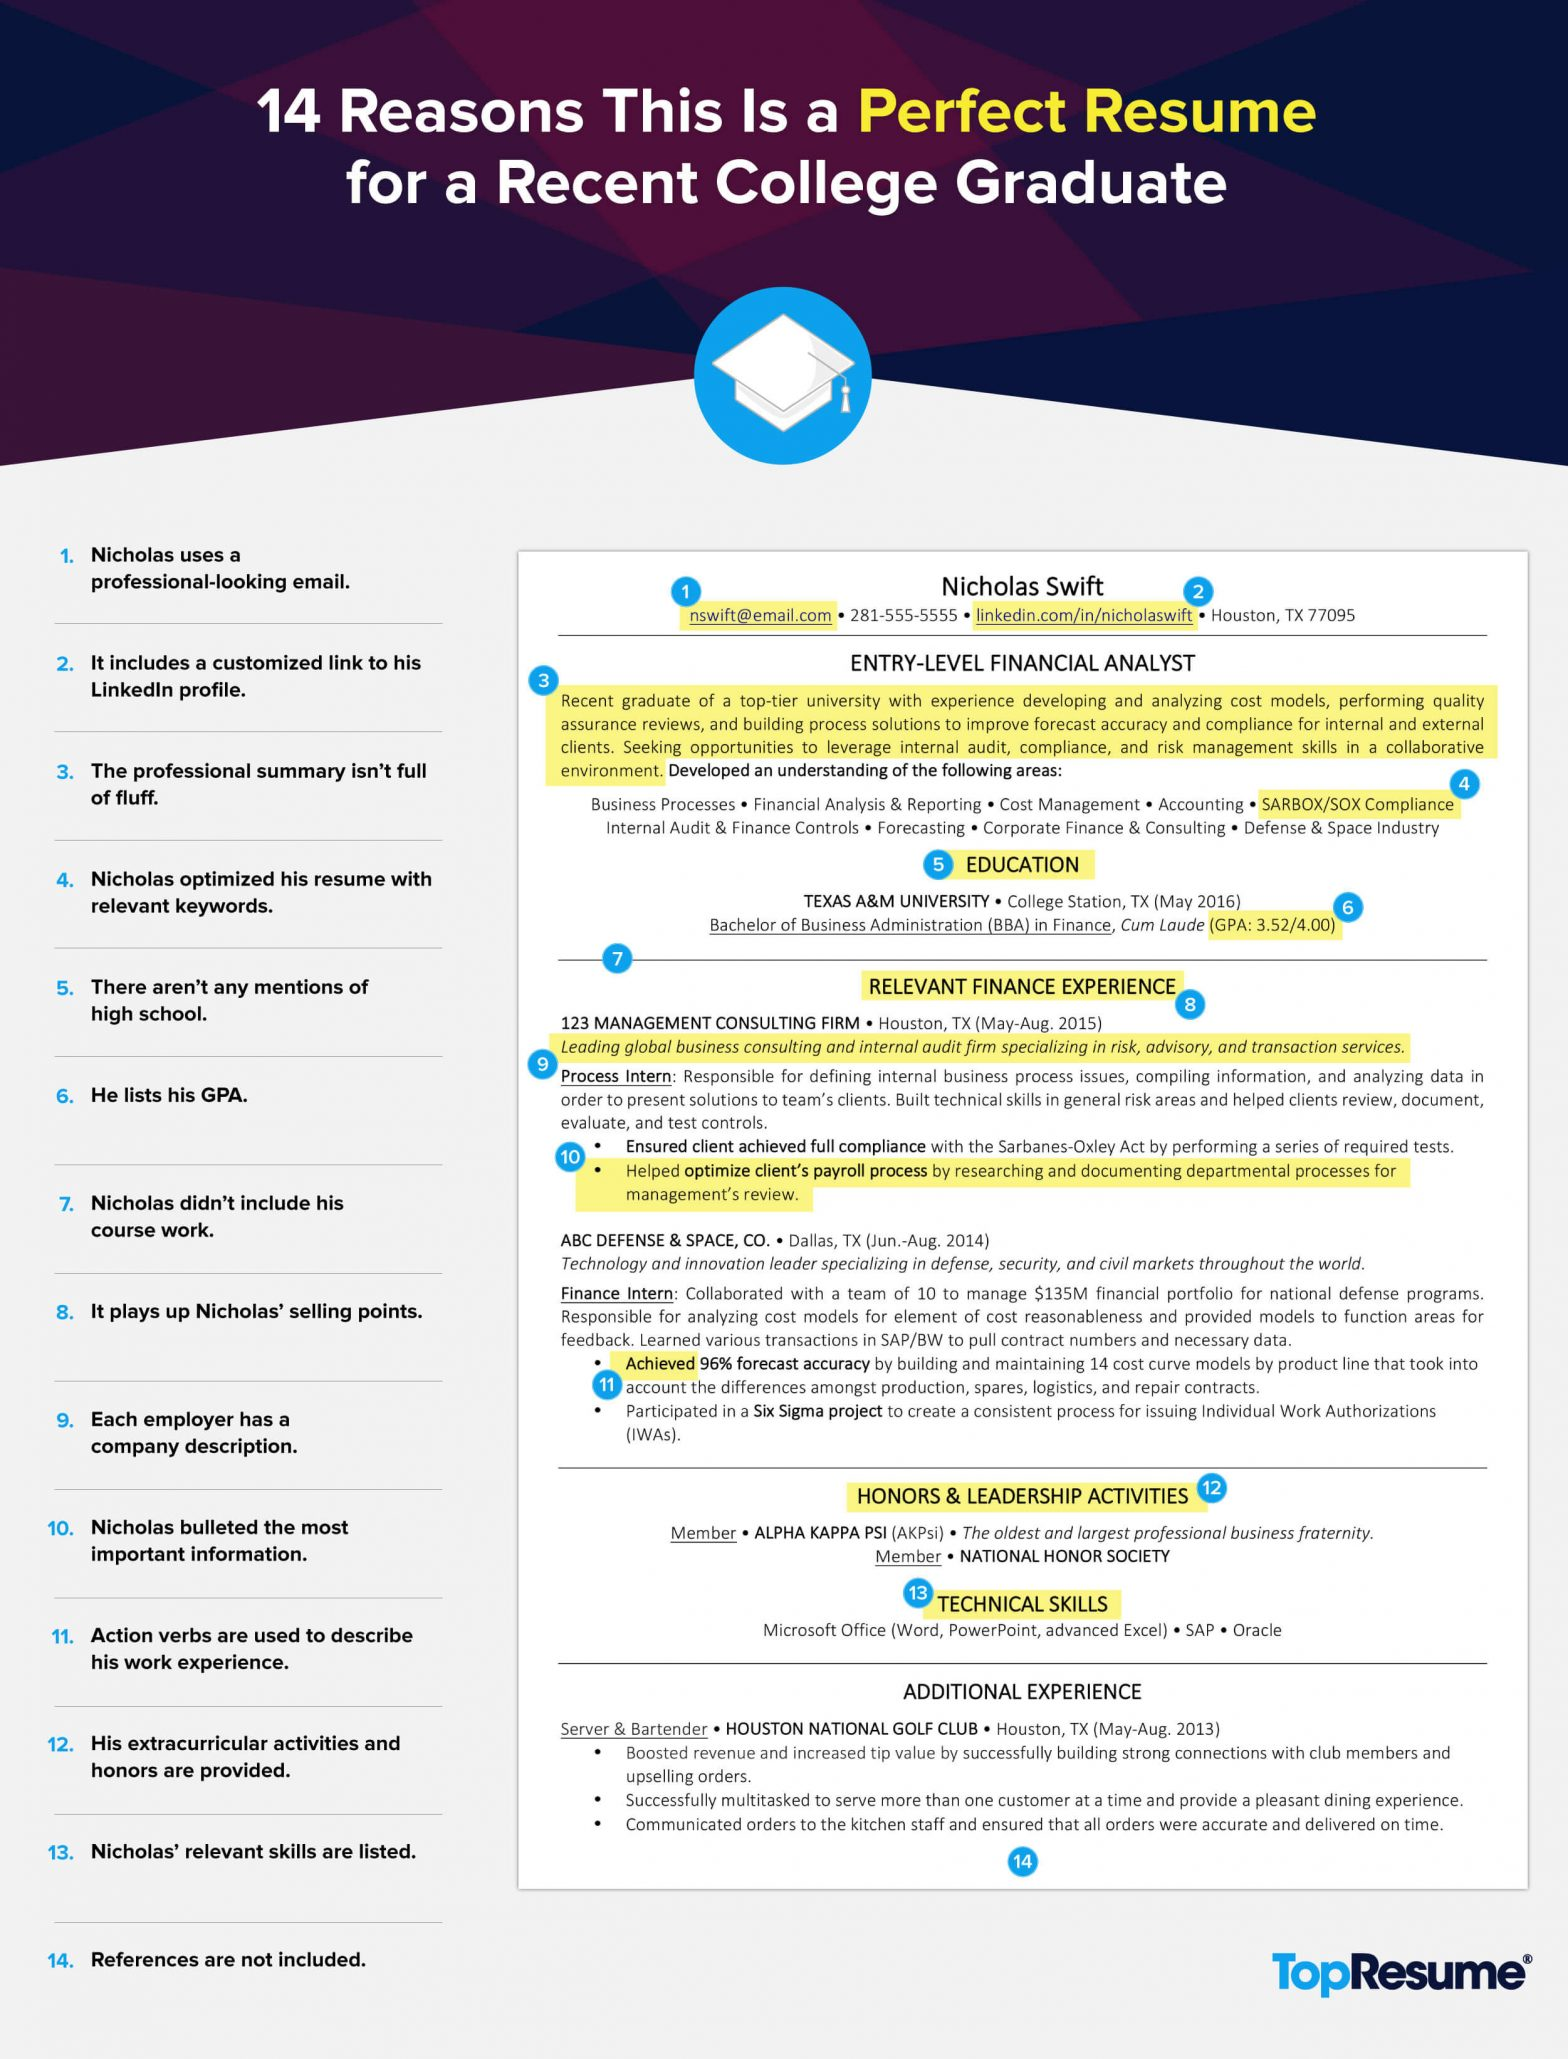 Sample Resume for Fresh College Graduate 14 Reasons This is A Perfect Recent College Graduate Resume ...